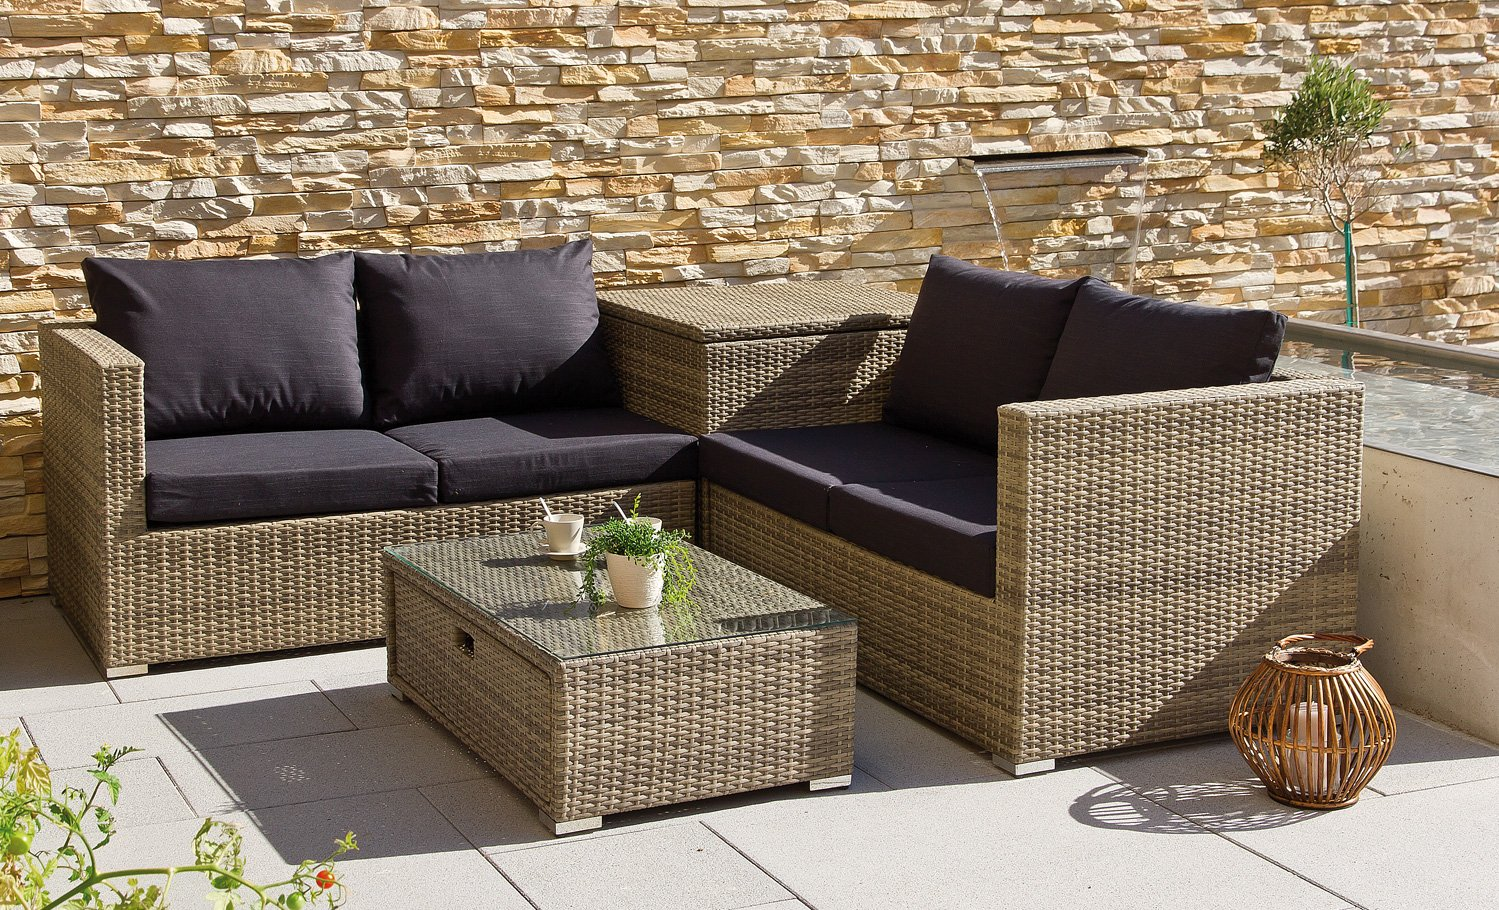 Rattan lounge set kos garten sitzgarnitur mit polsterbox for Lounge set rattan gunstig